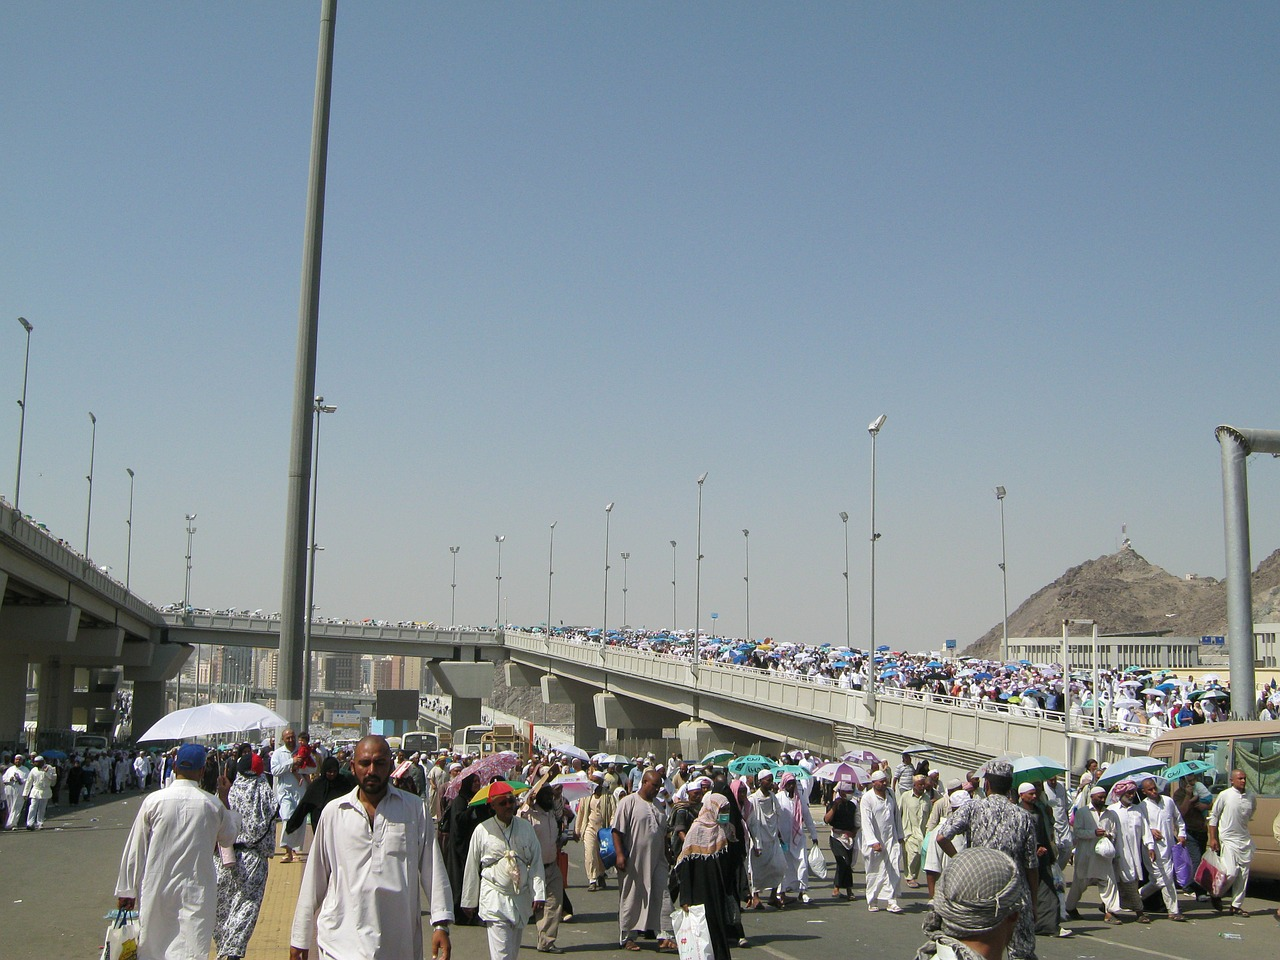 the pilgrim's guide mecca jamarat free photo